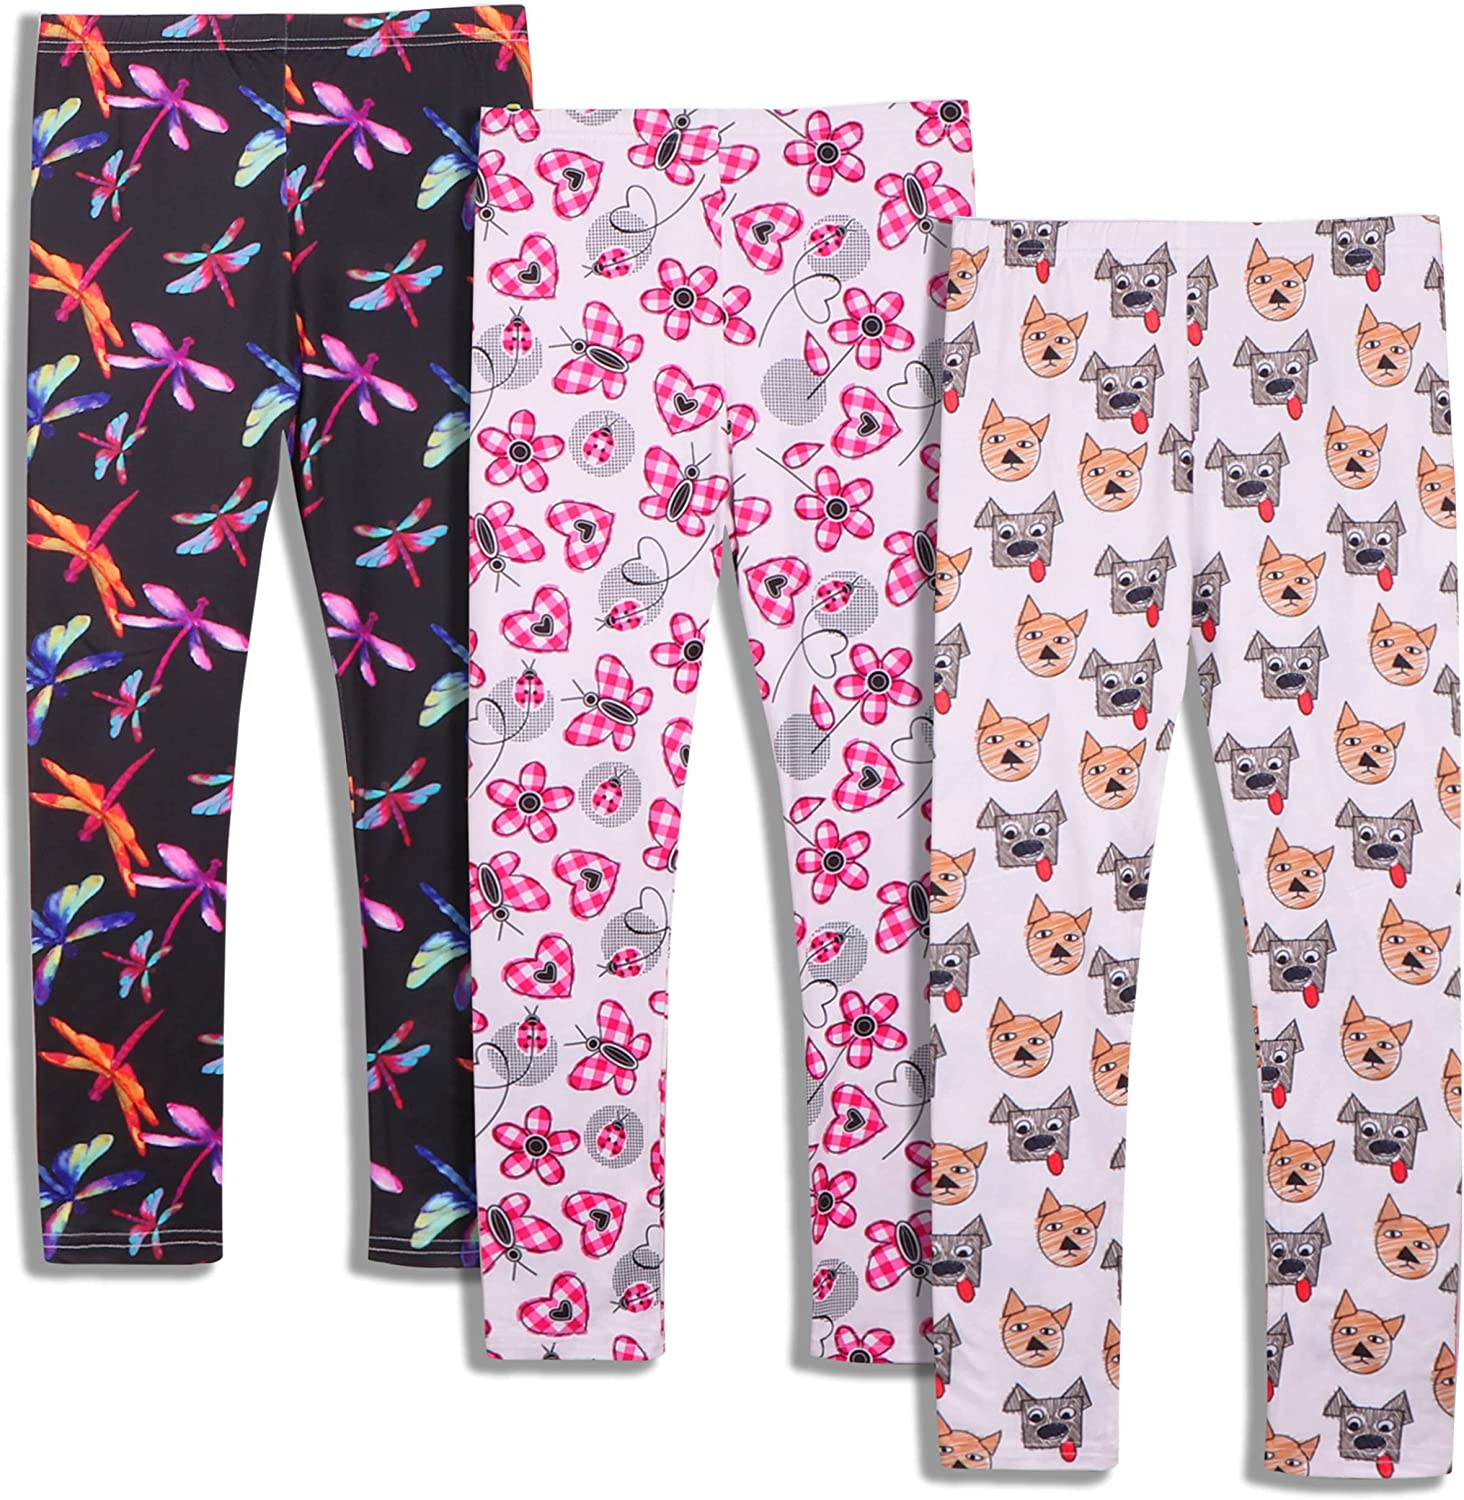 iLover Girls Cute Stretch Athletic Max 72% OFF Kids Ankl Yoga Max 47% OFF Pants Leggings